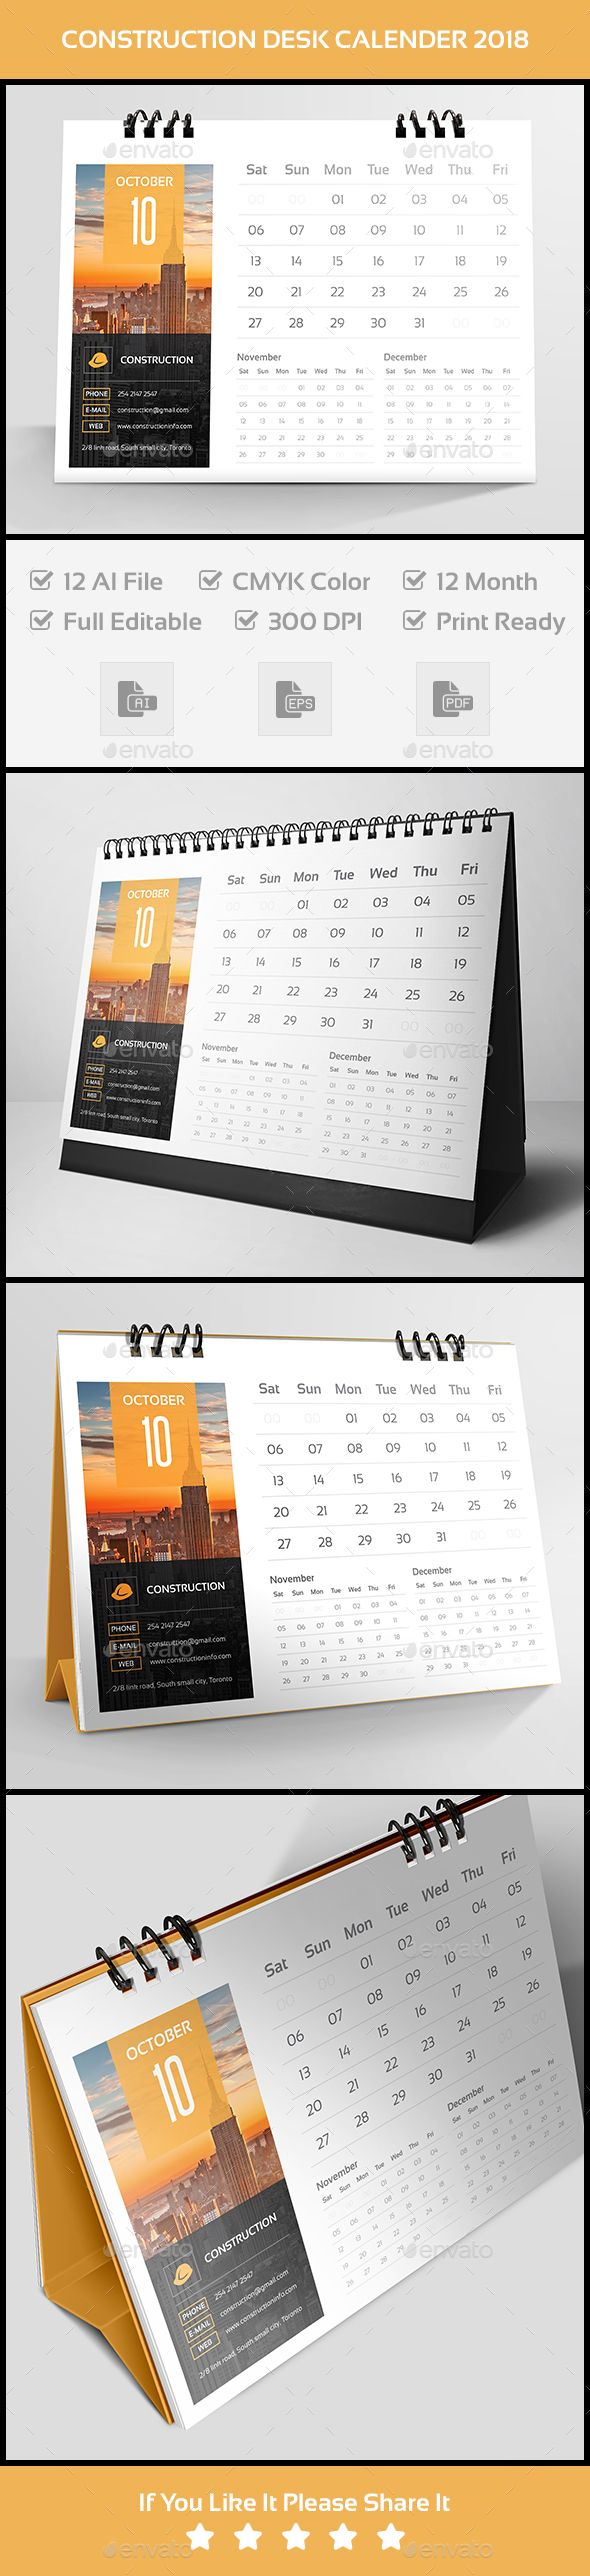 Construction Desk Calender 2018 - #Calendars #Stationery Download here: https://graphicriver.net/item/construction-desk-calender-2018/20089120?ref=alena994